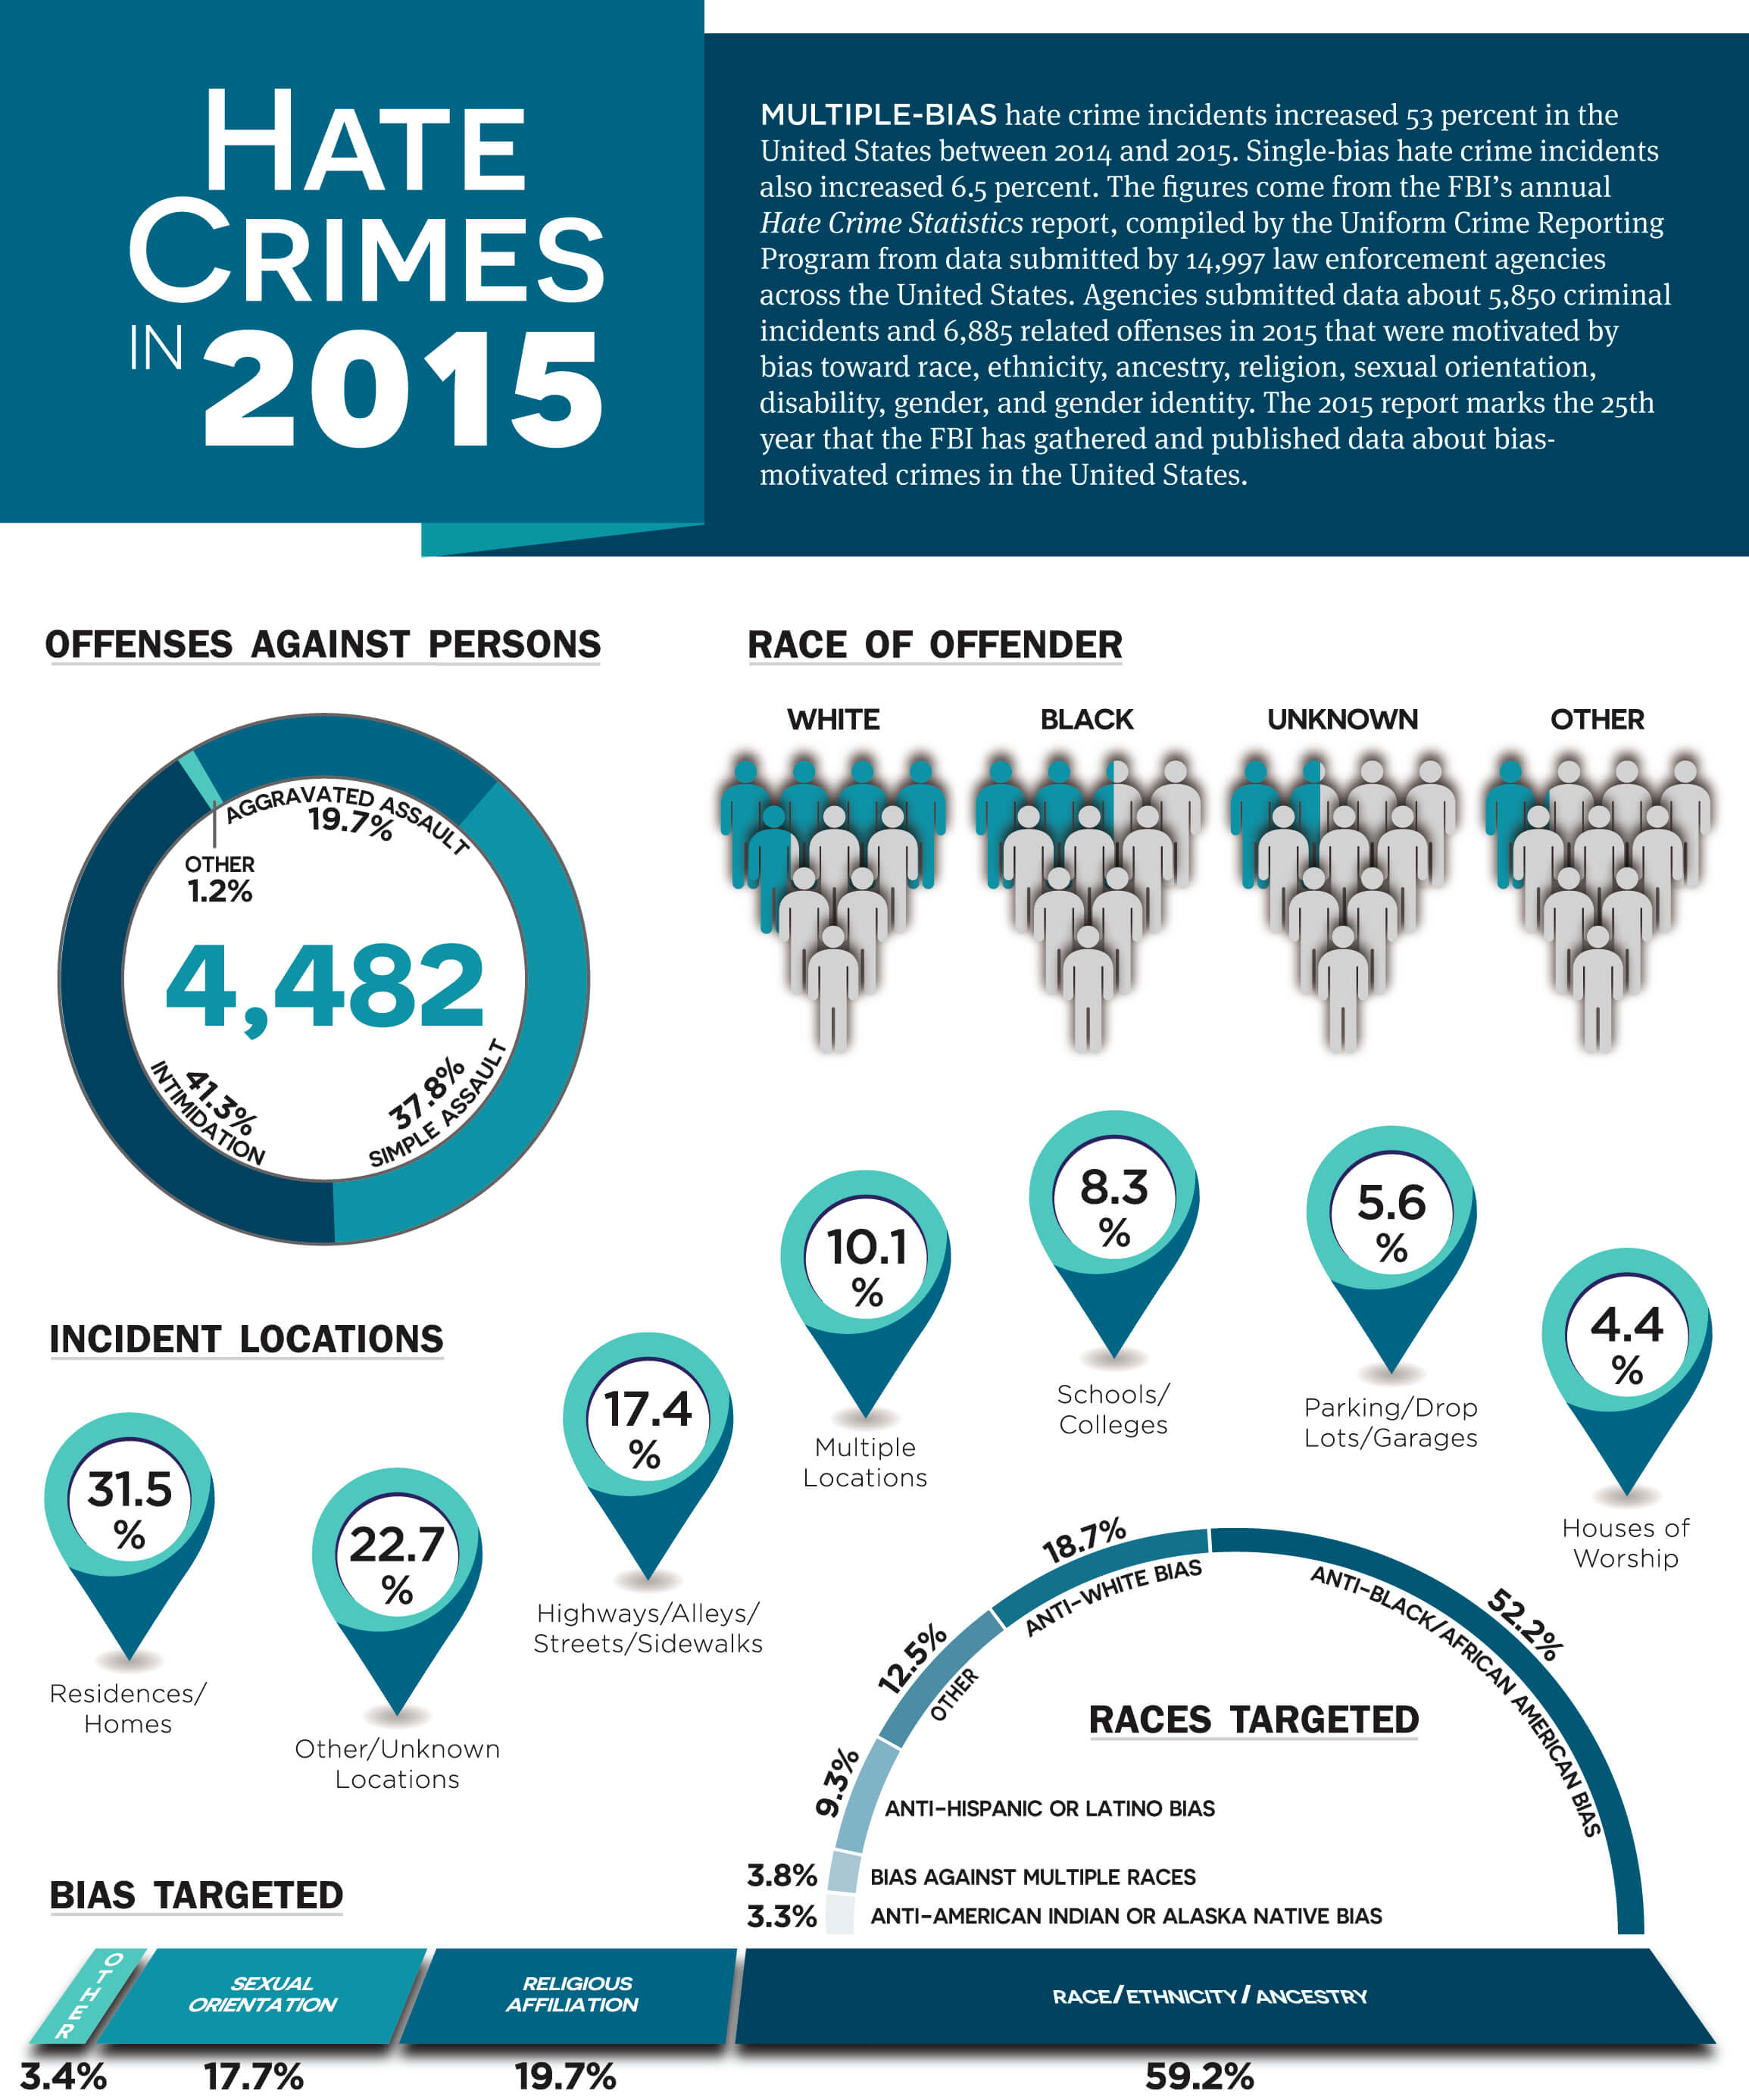 hate crimes infographic